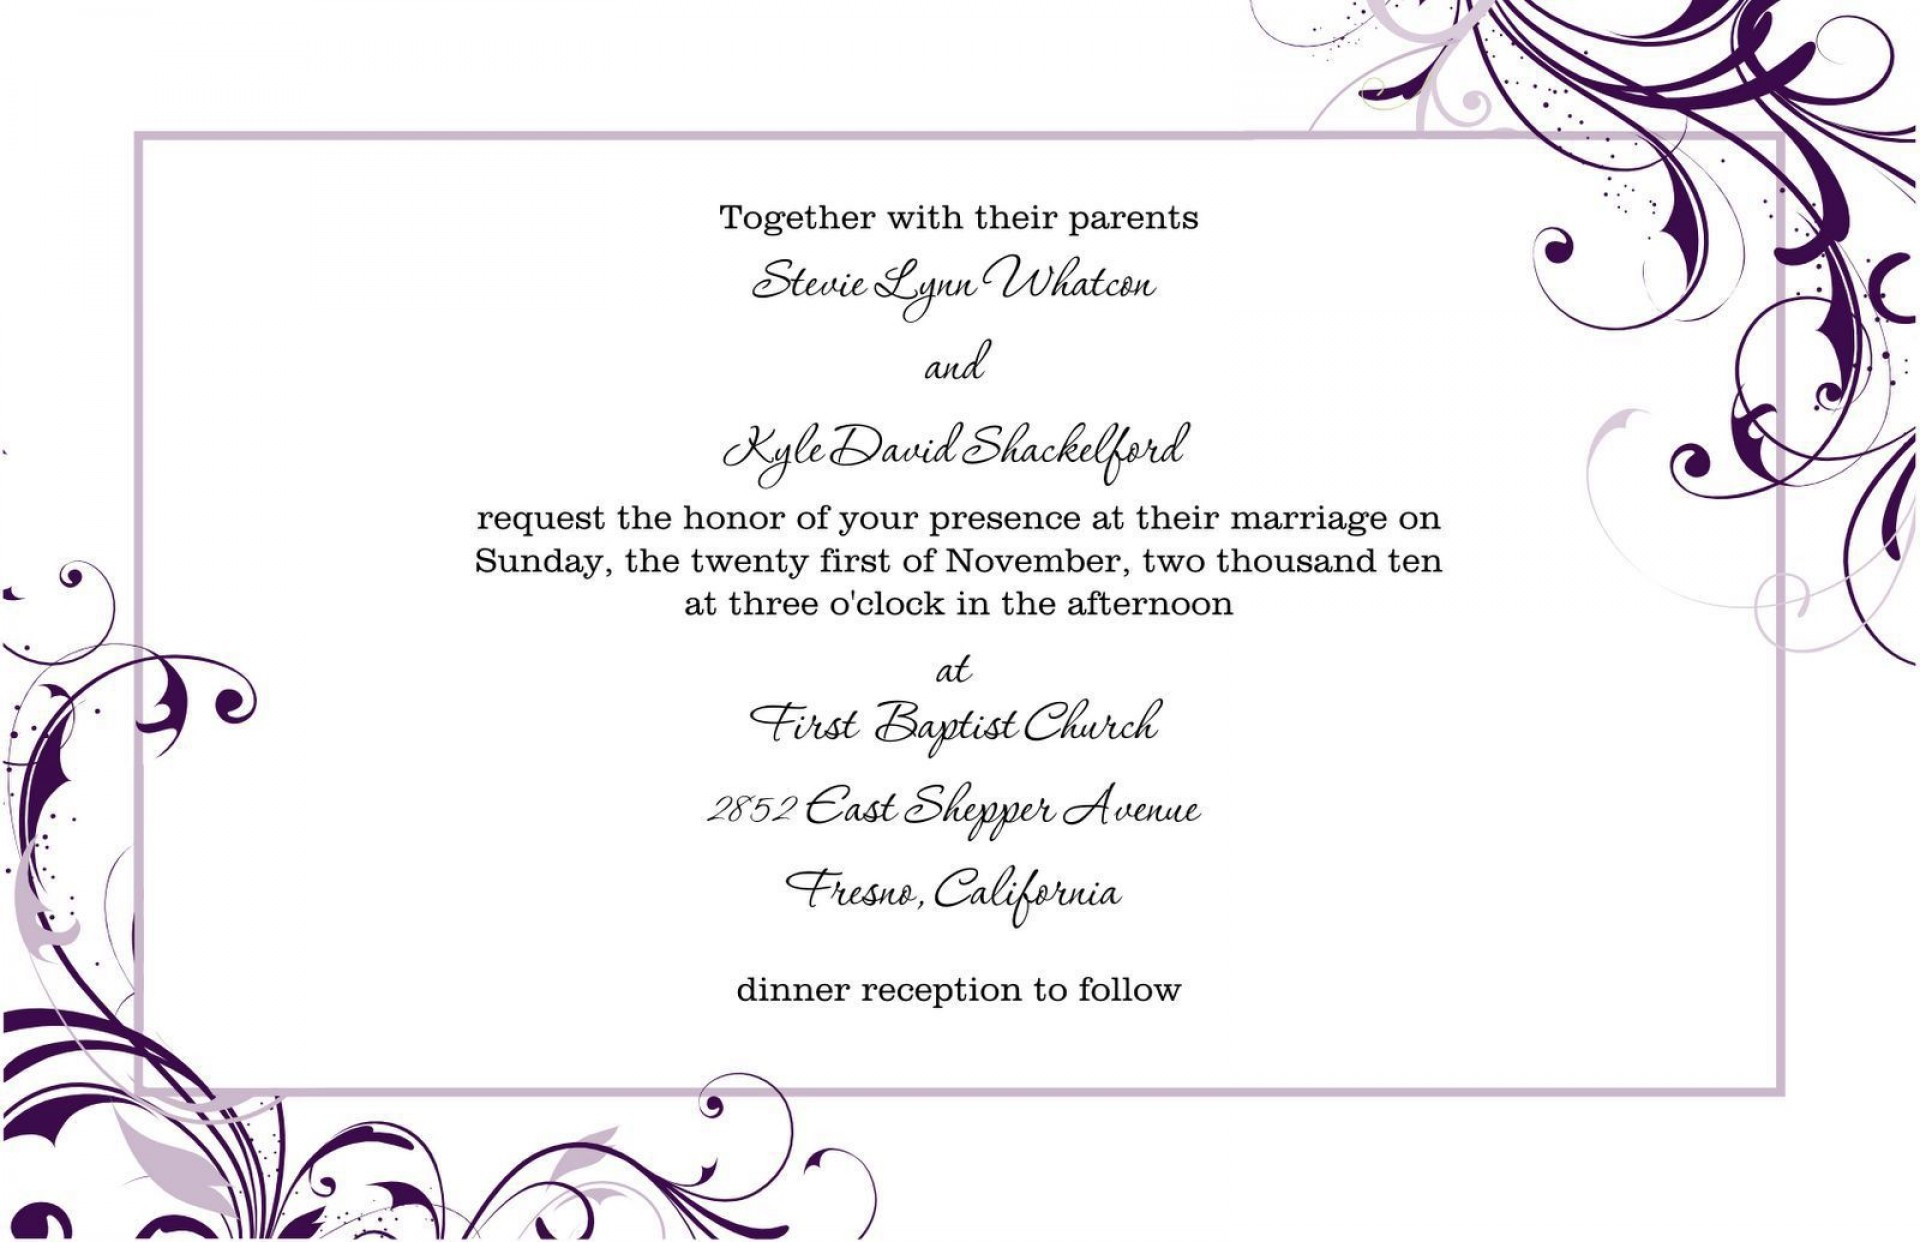 006 Magnificent M Word Invitation Template High Def  Microsoft Card Wedding Free Download Editable1920